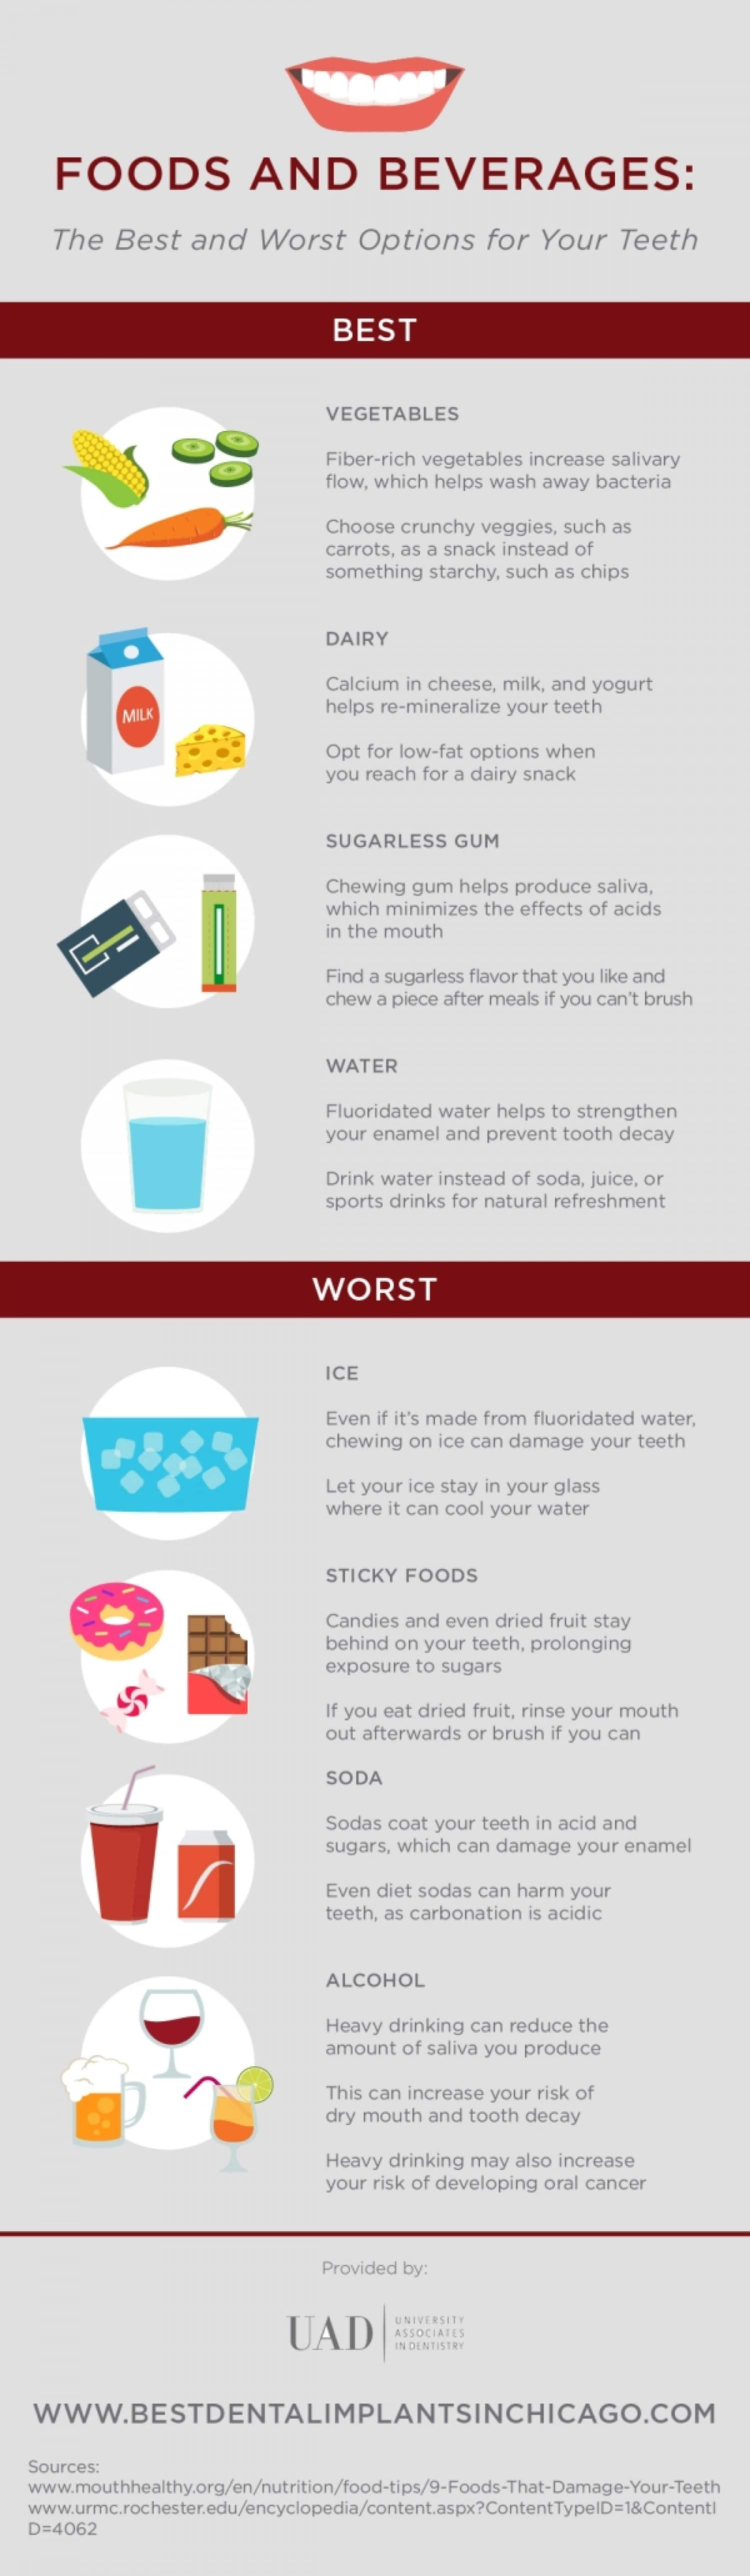 Foods and Beverages - the best and worst options for your teeth